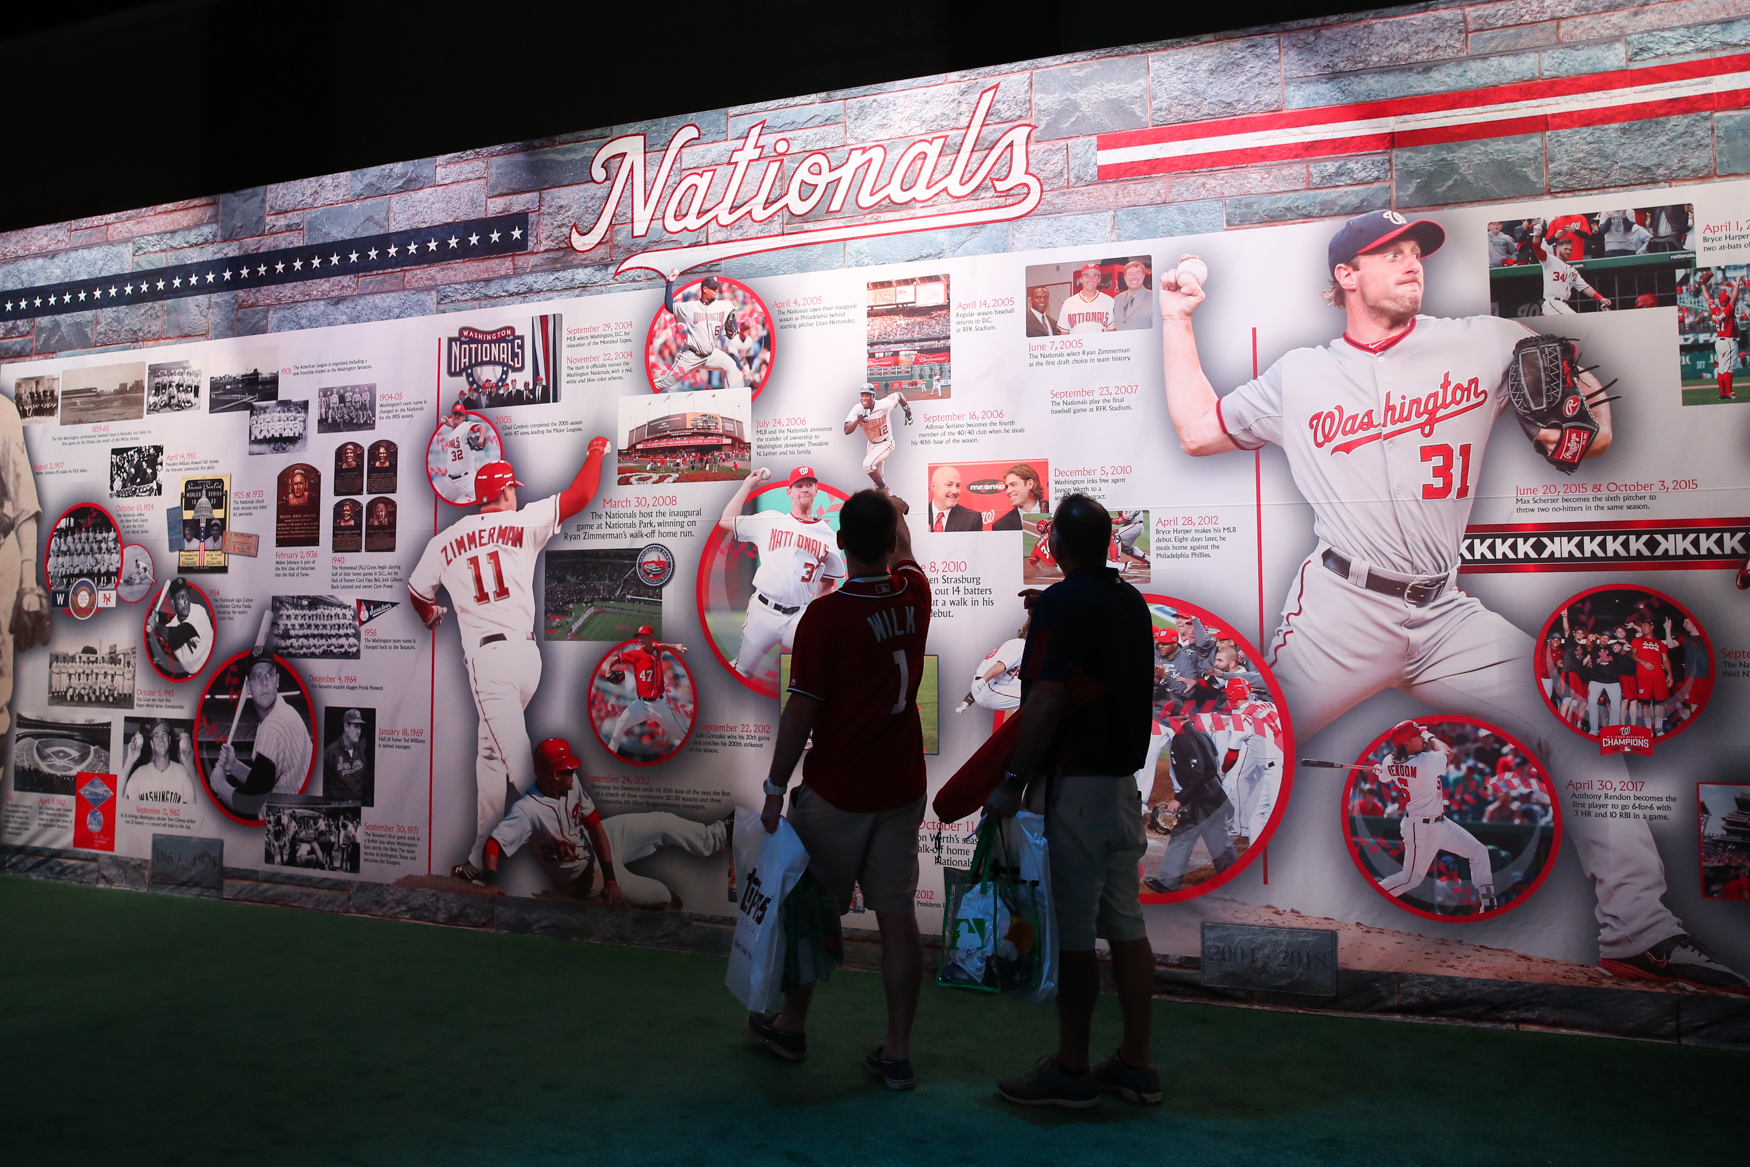 Not all of us were able to score tickets to the All-Star game, but you can still catch the baseball fever at FanFest. Between July 13-17, the Walter E. Washington Convention Center will be filled with all things baseball, giving fans the chance to meet the players, check out some memorabilia and even take a few swings at one of the many activity booths. (Amanda Andrade-Rhoades/DC Refined)